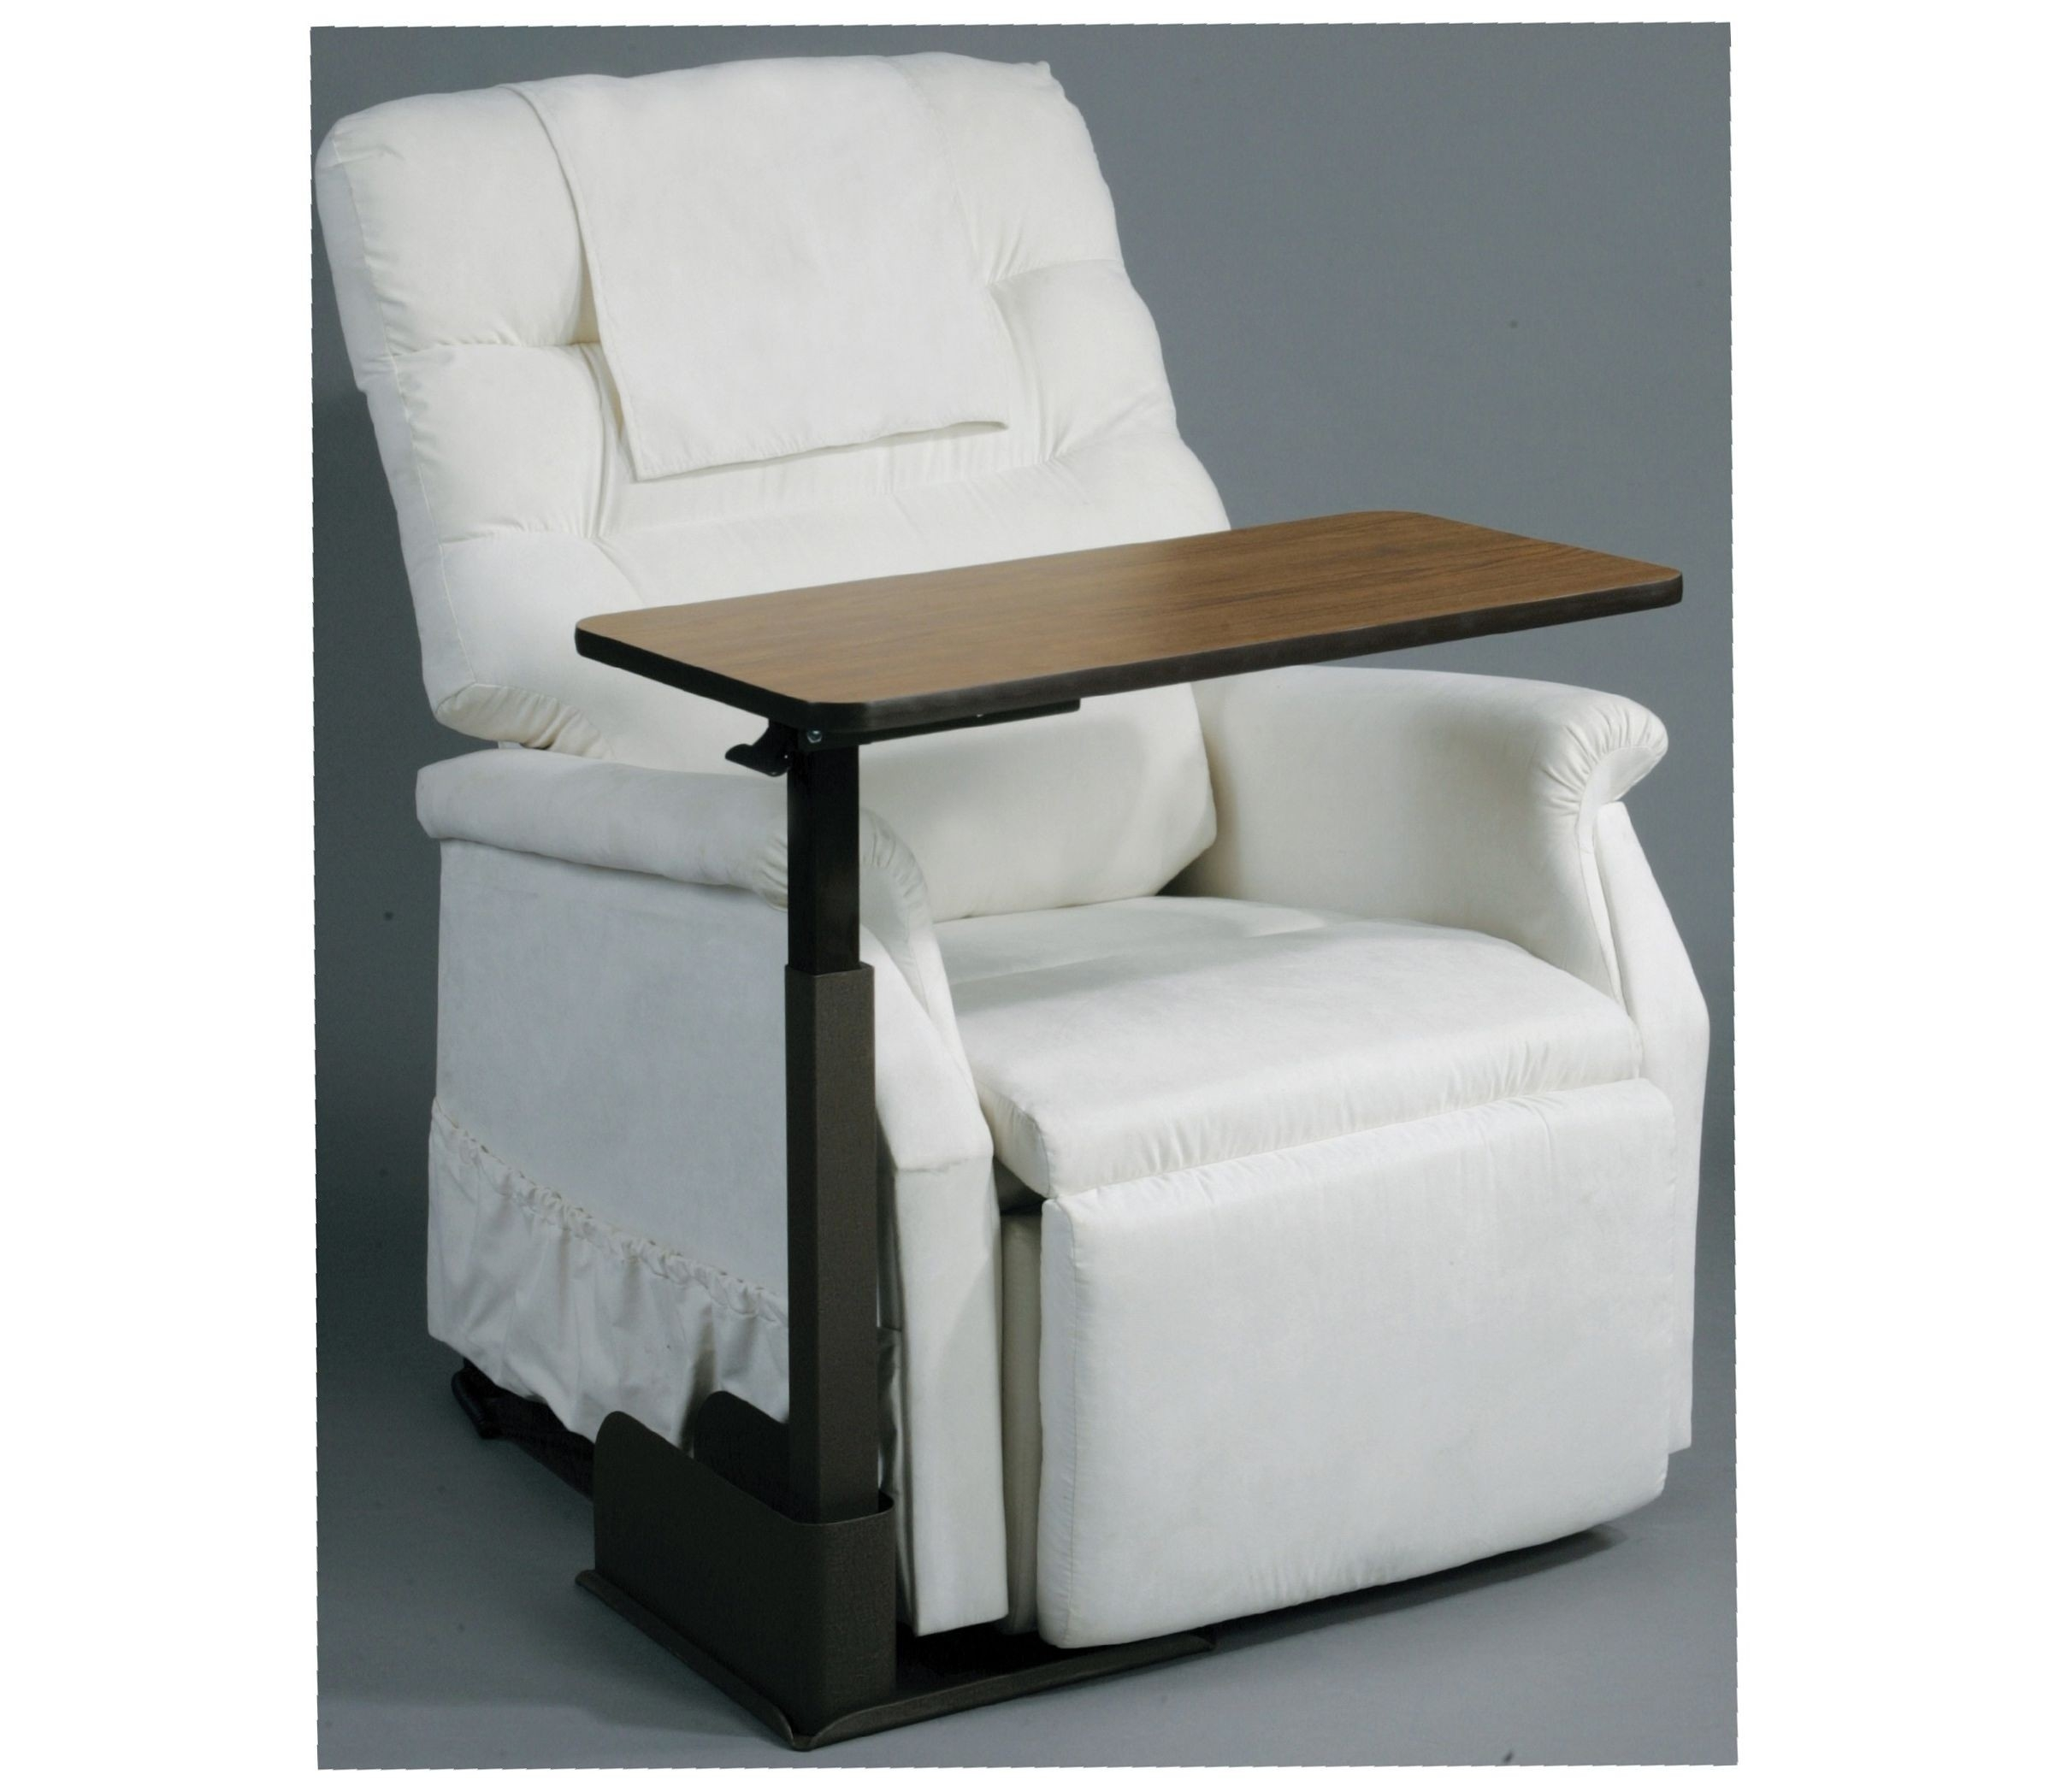 Image of: Best Laptop Table For Recliner Couch Desk Ideas On Foter